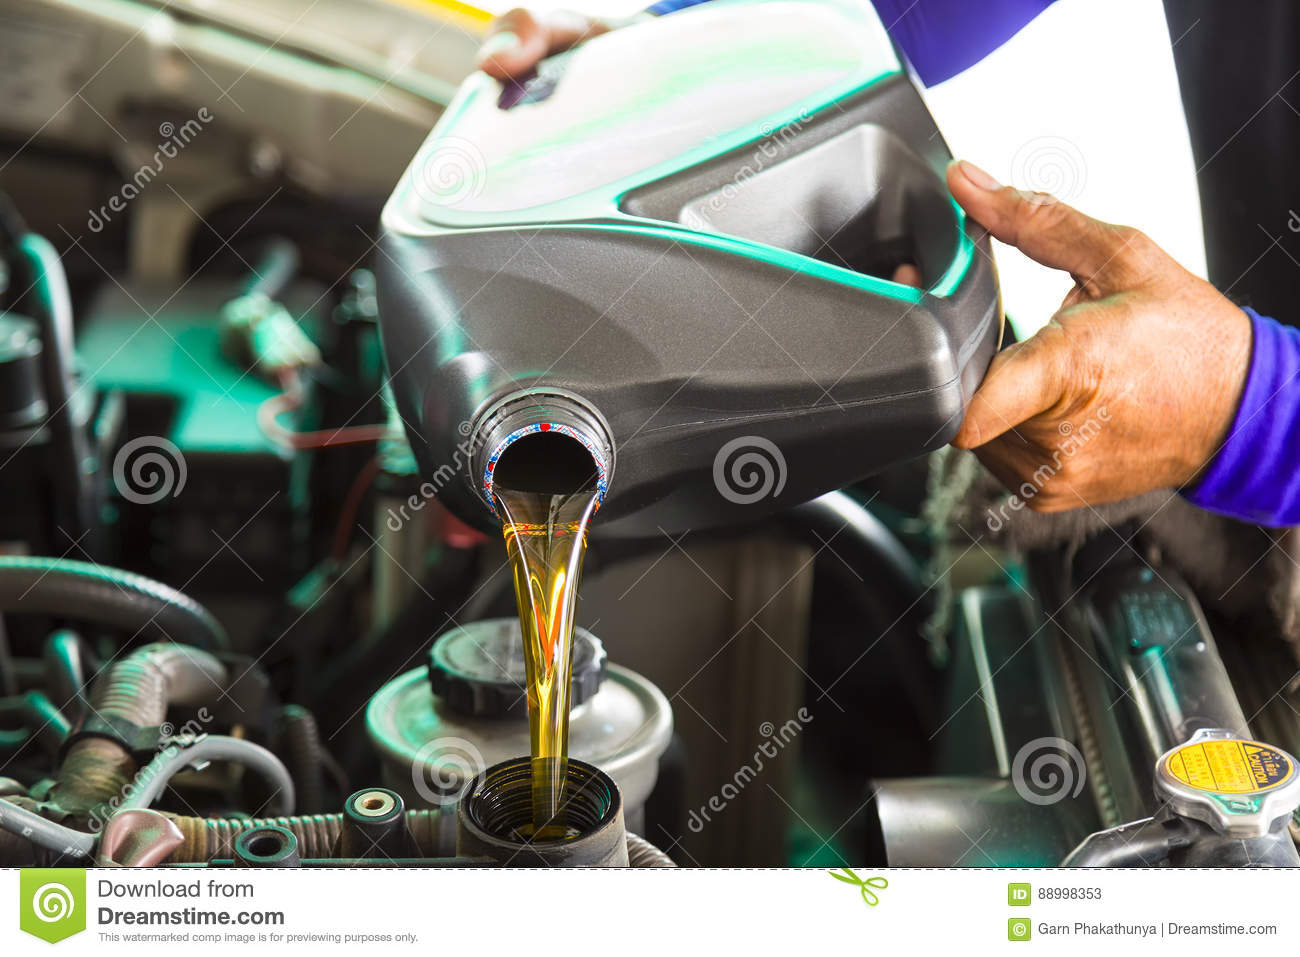 Car mechanic replacing and pouring fresh oil into engine at main